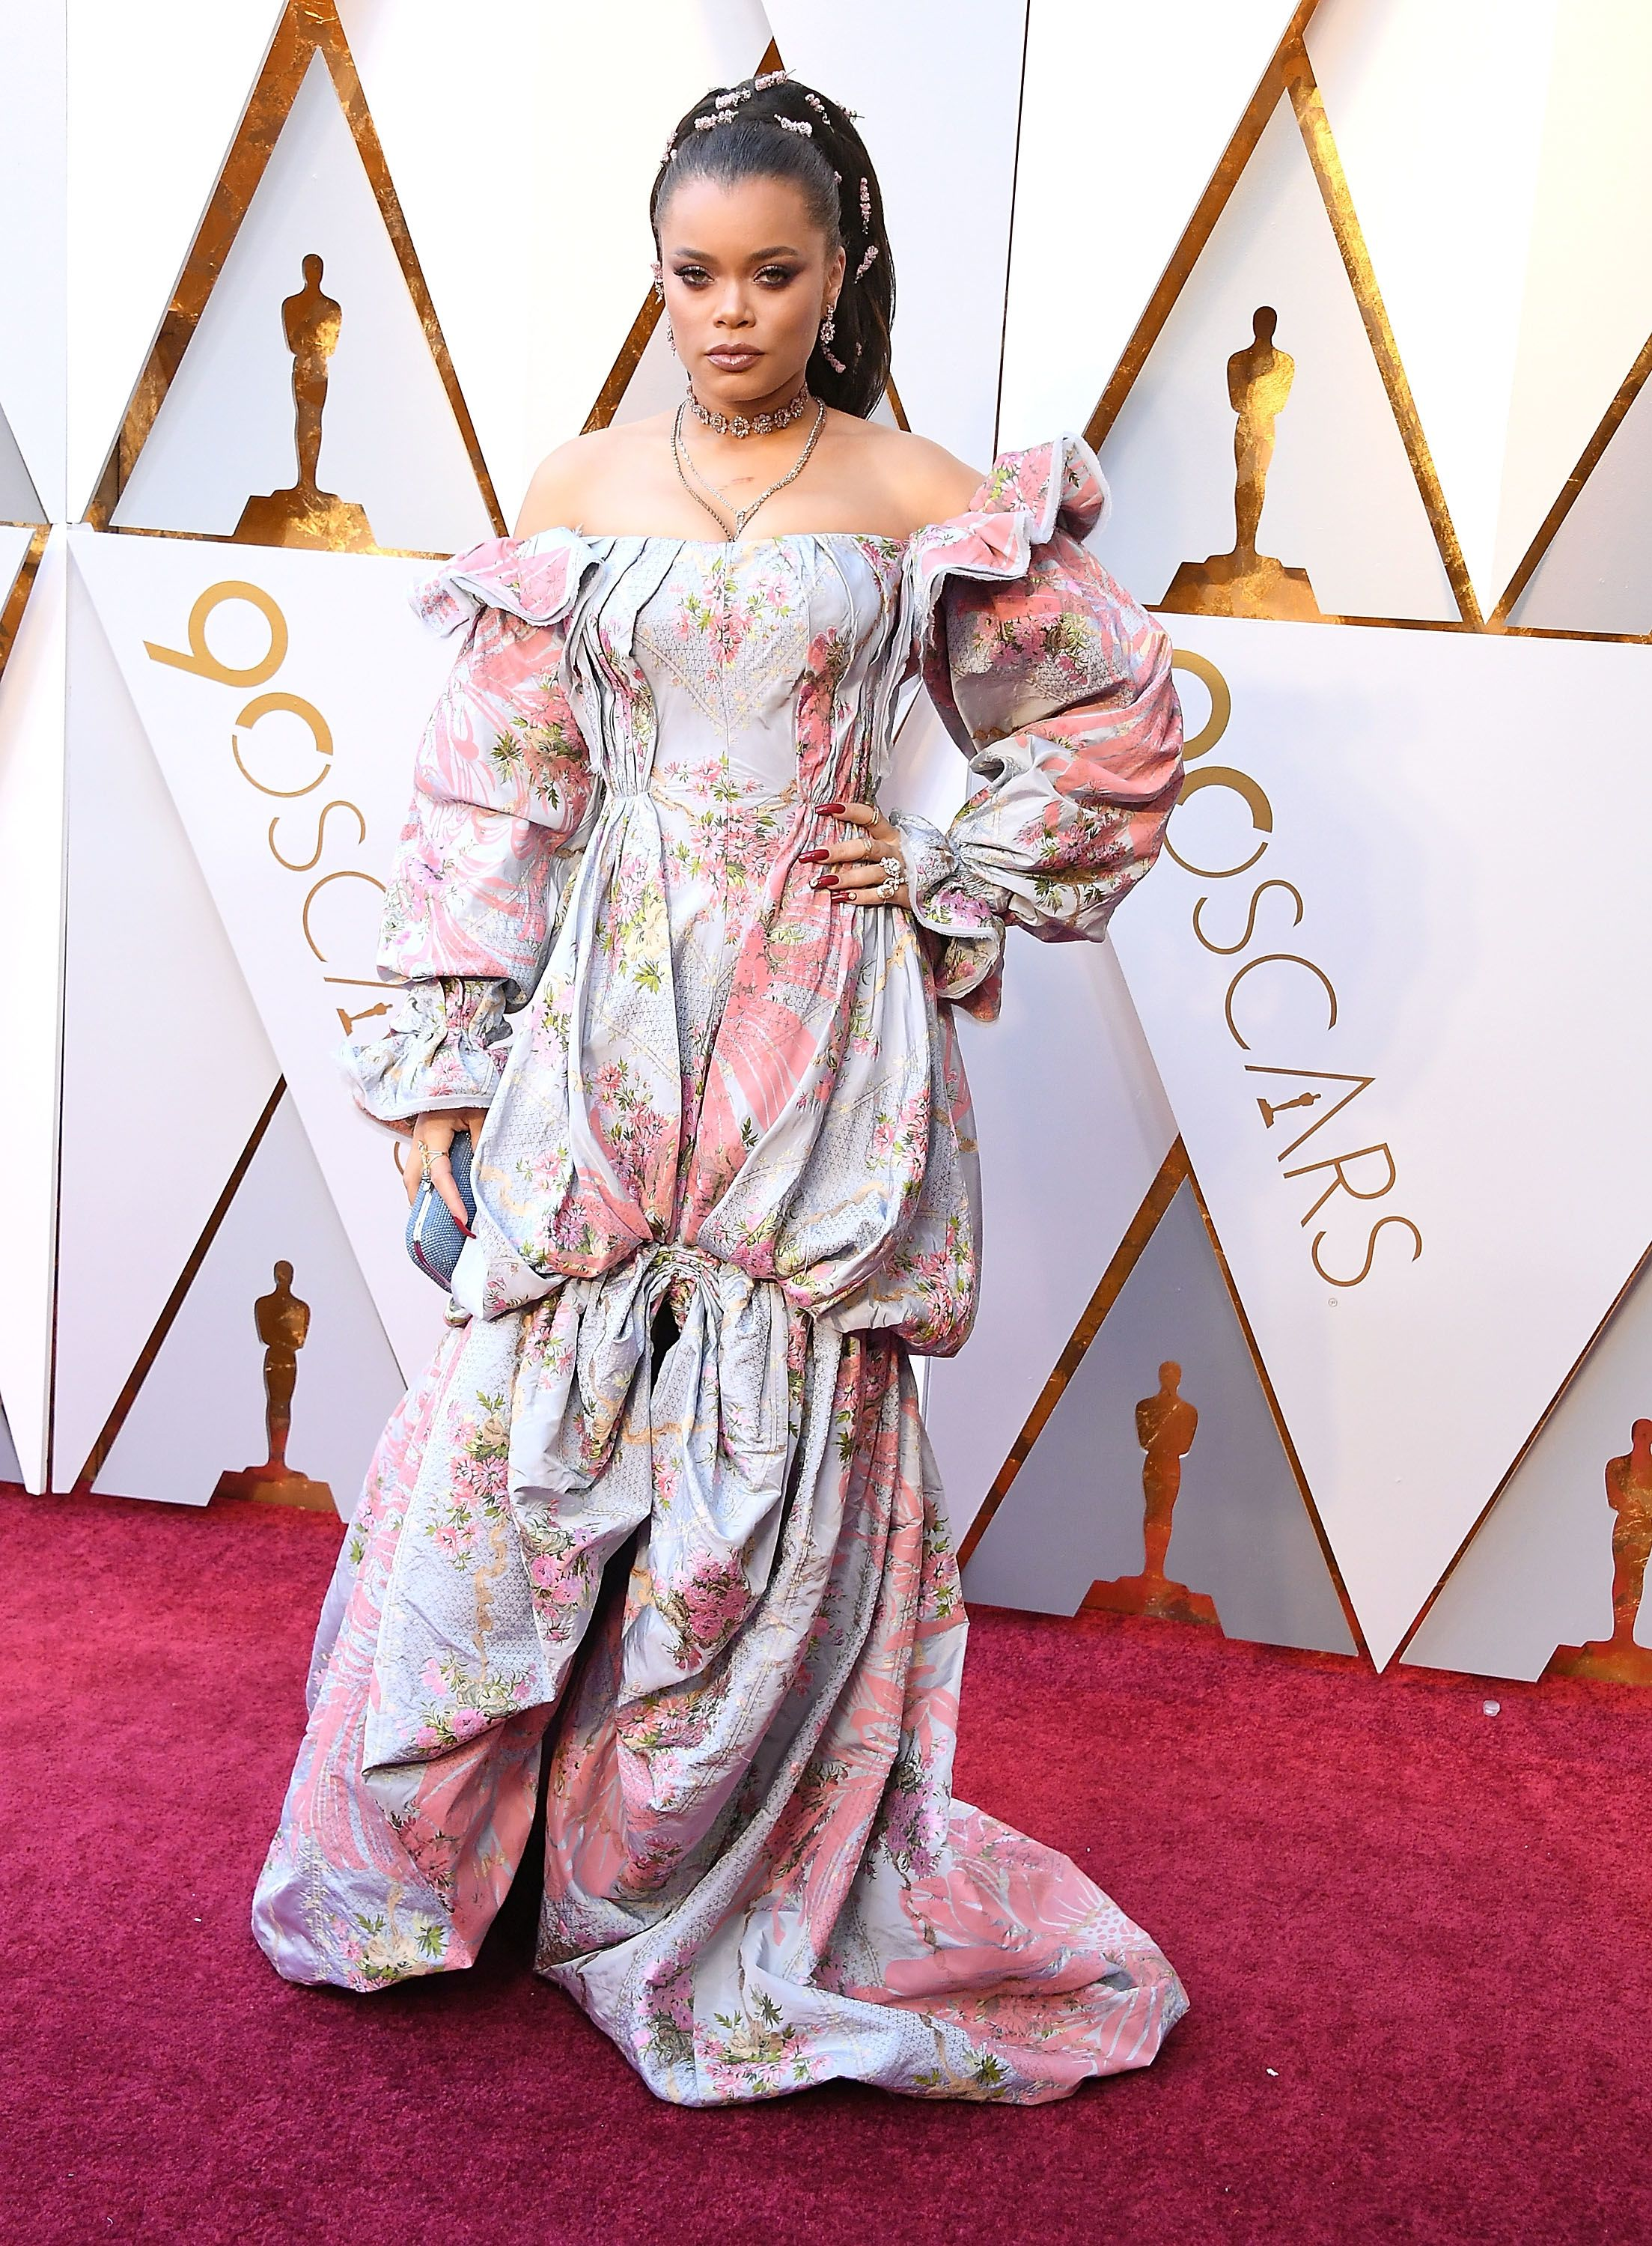 HOLLYWOOD, CA - MARCH 04: Andra Day arrives at the 90th Annual Academy Awards at Hollywood & Highland Center on March 4, 2018 in Hollywood, California. (Photo by Steve Granitz/WireImage)